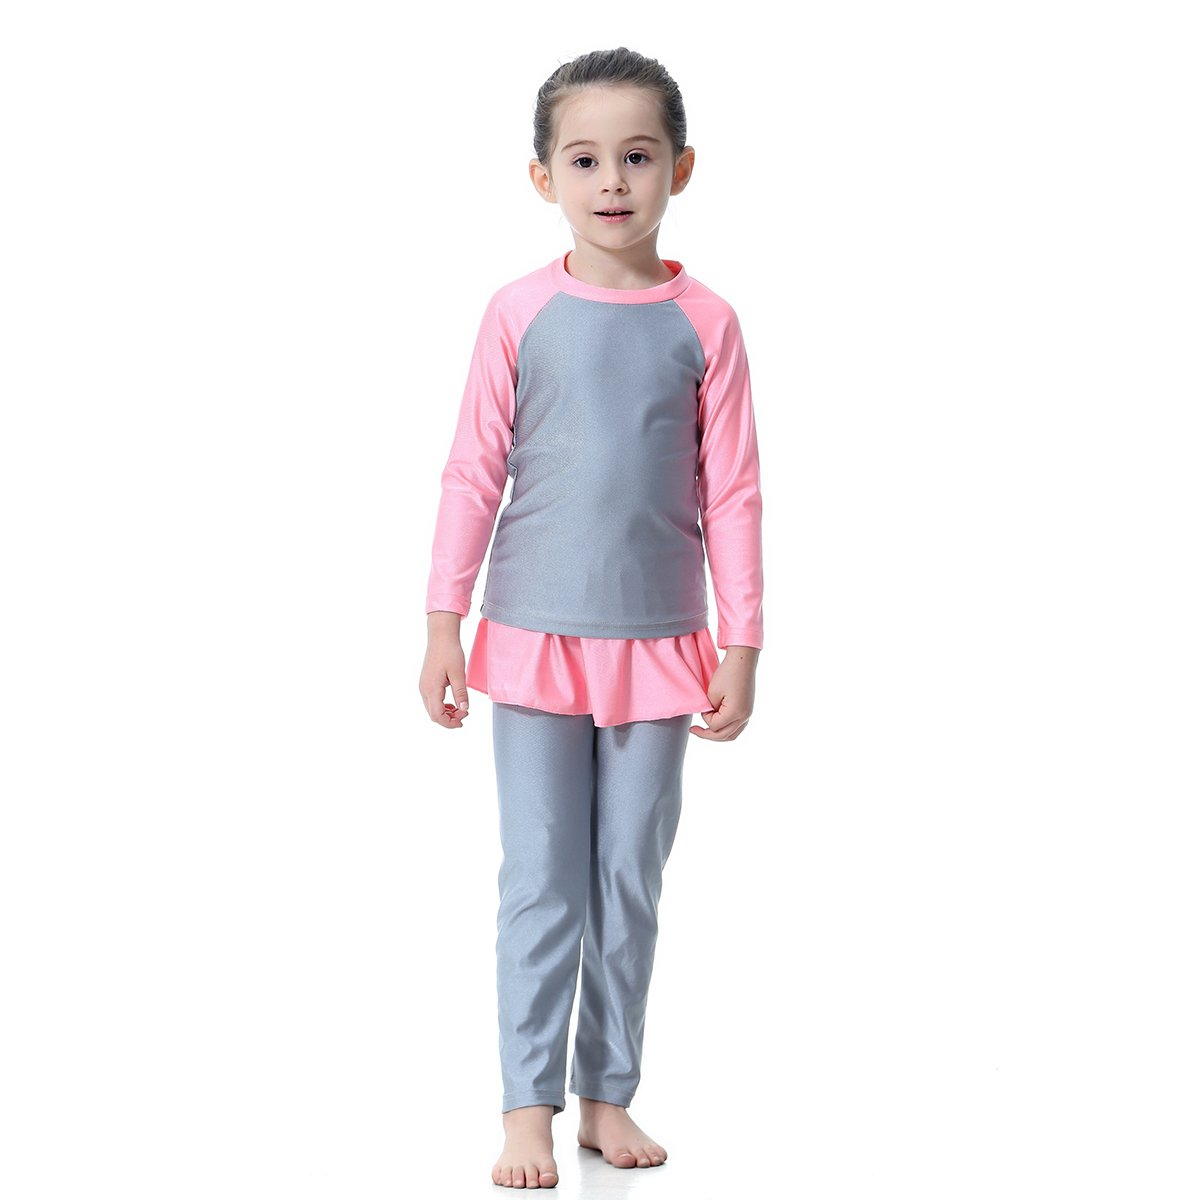 XDXART Modest Muslim Swimsuit Long Sleeve Pants Beachwear Spring and Fall Islamic Costume for Girls